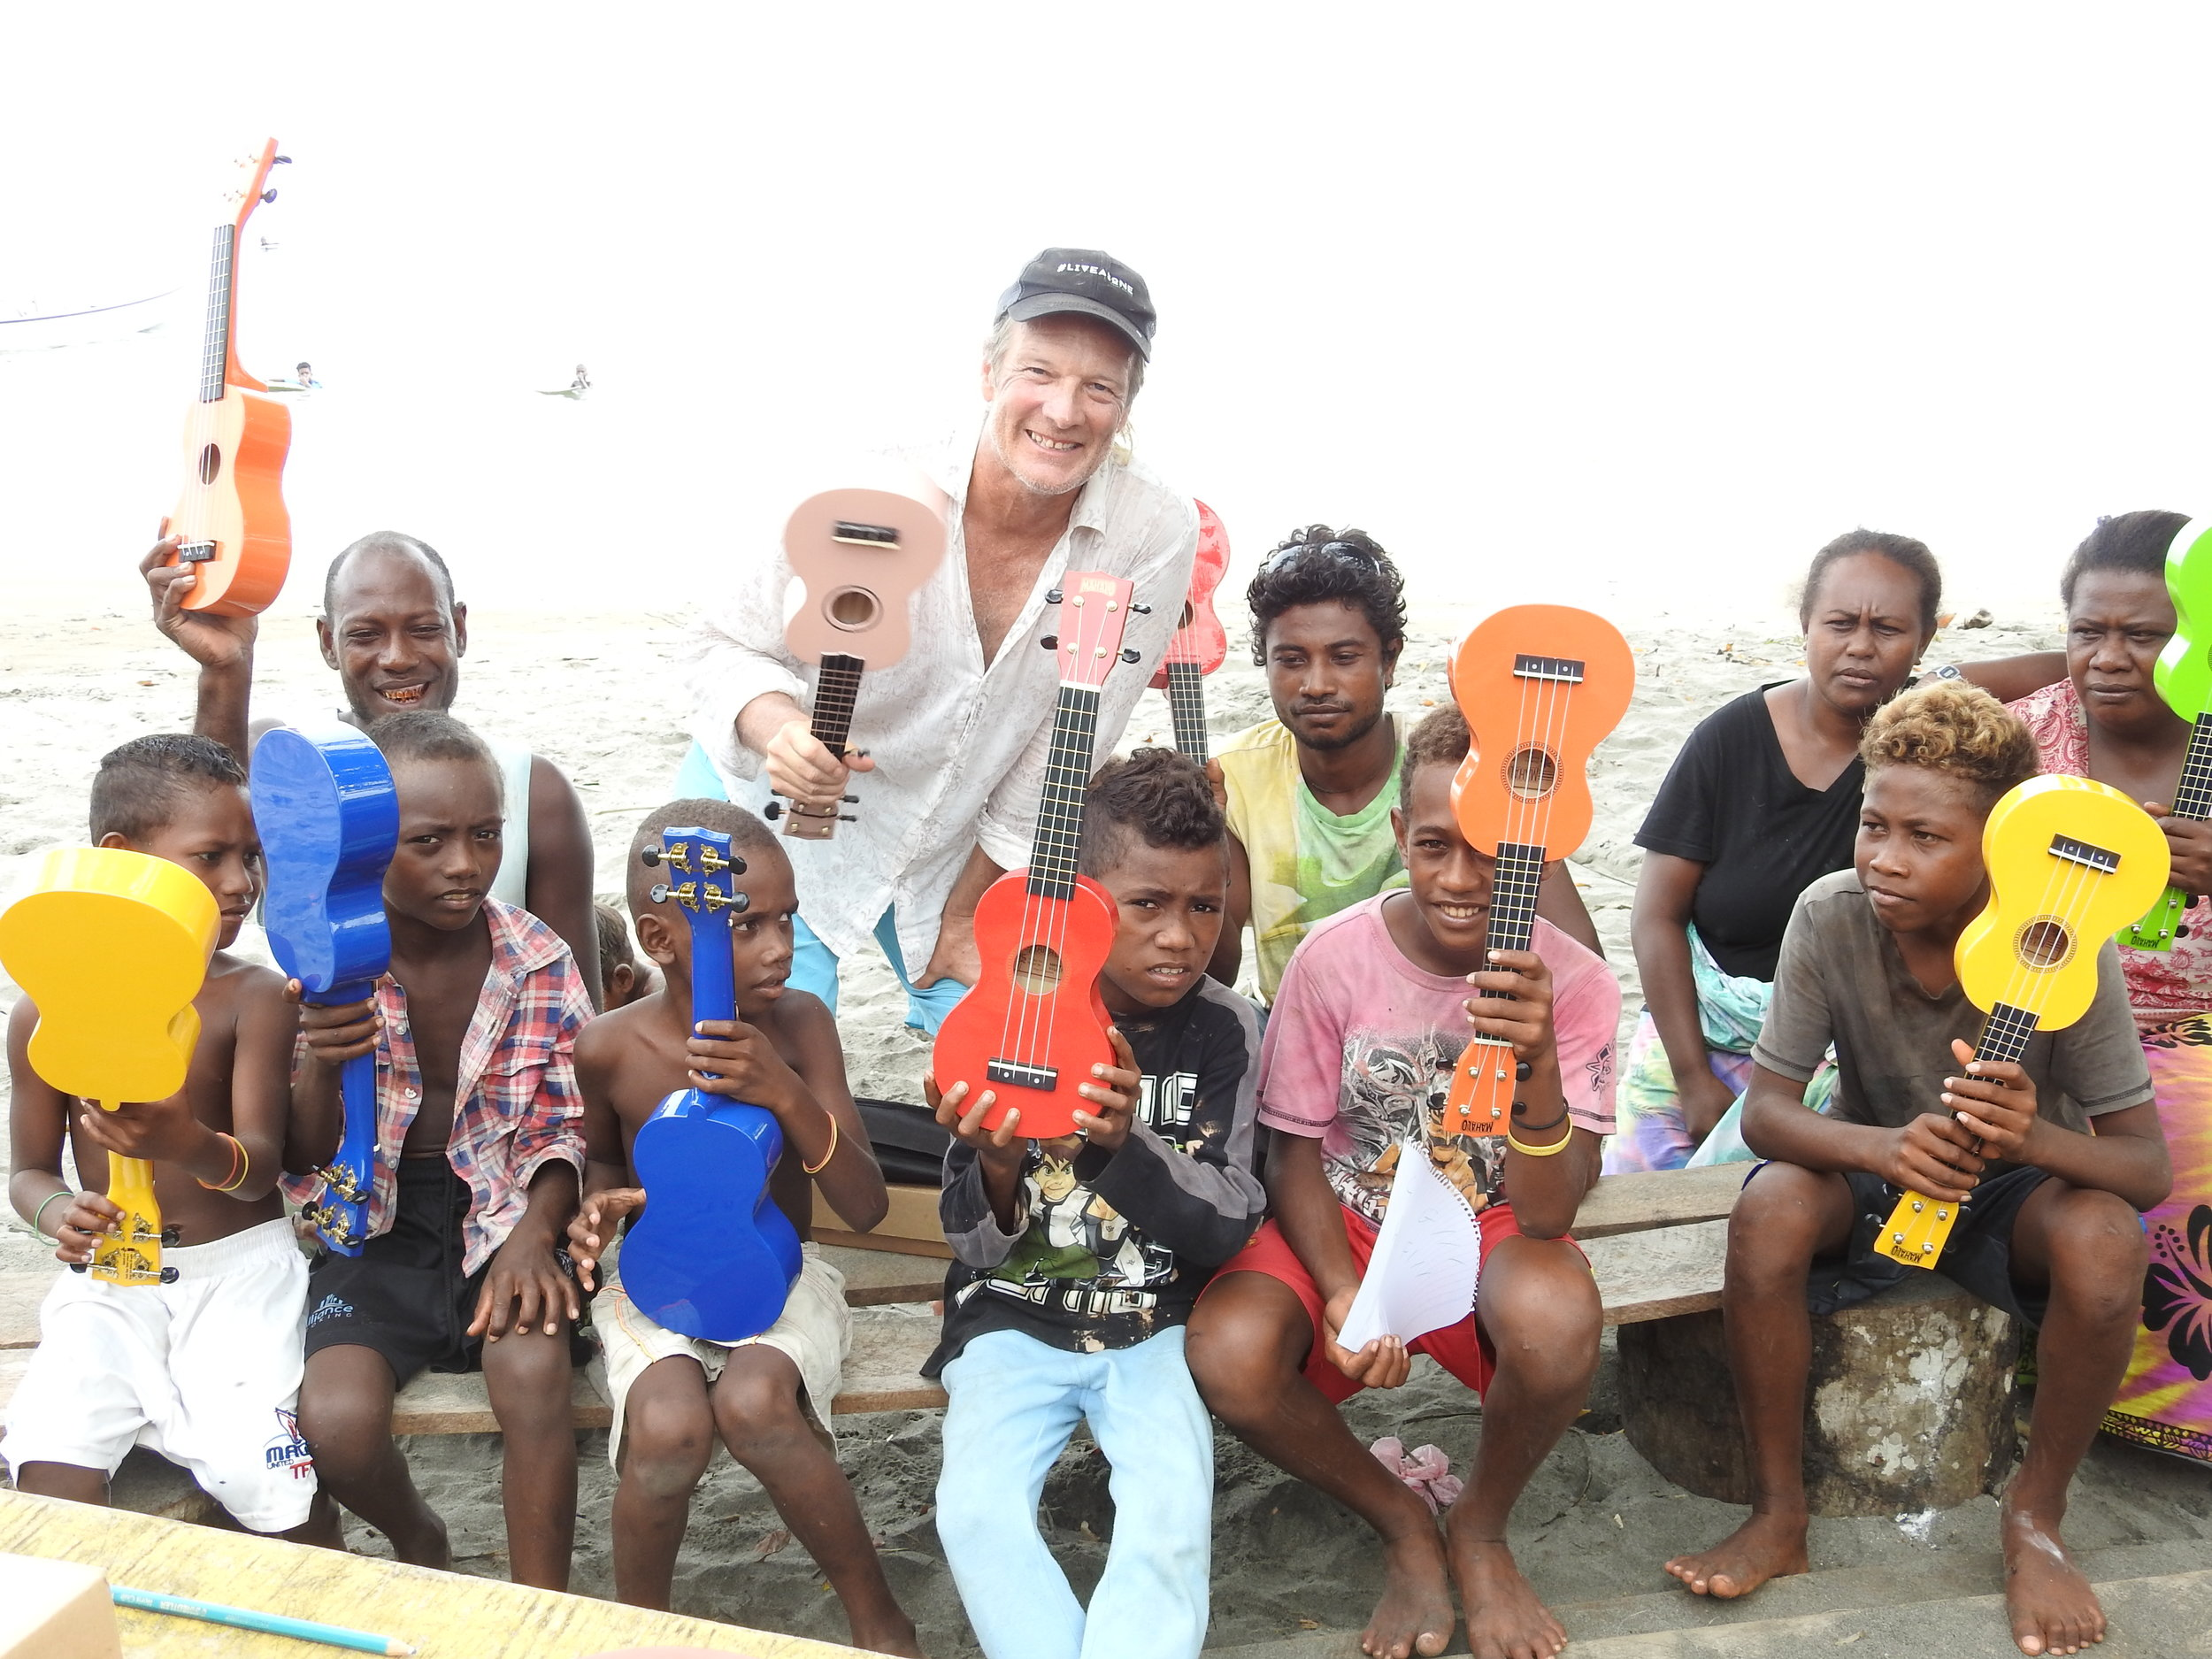 cHRIS'S DONATION OF UKULELE'S LOVED BY THE VILLAGE!